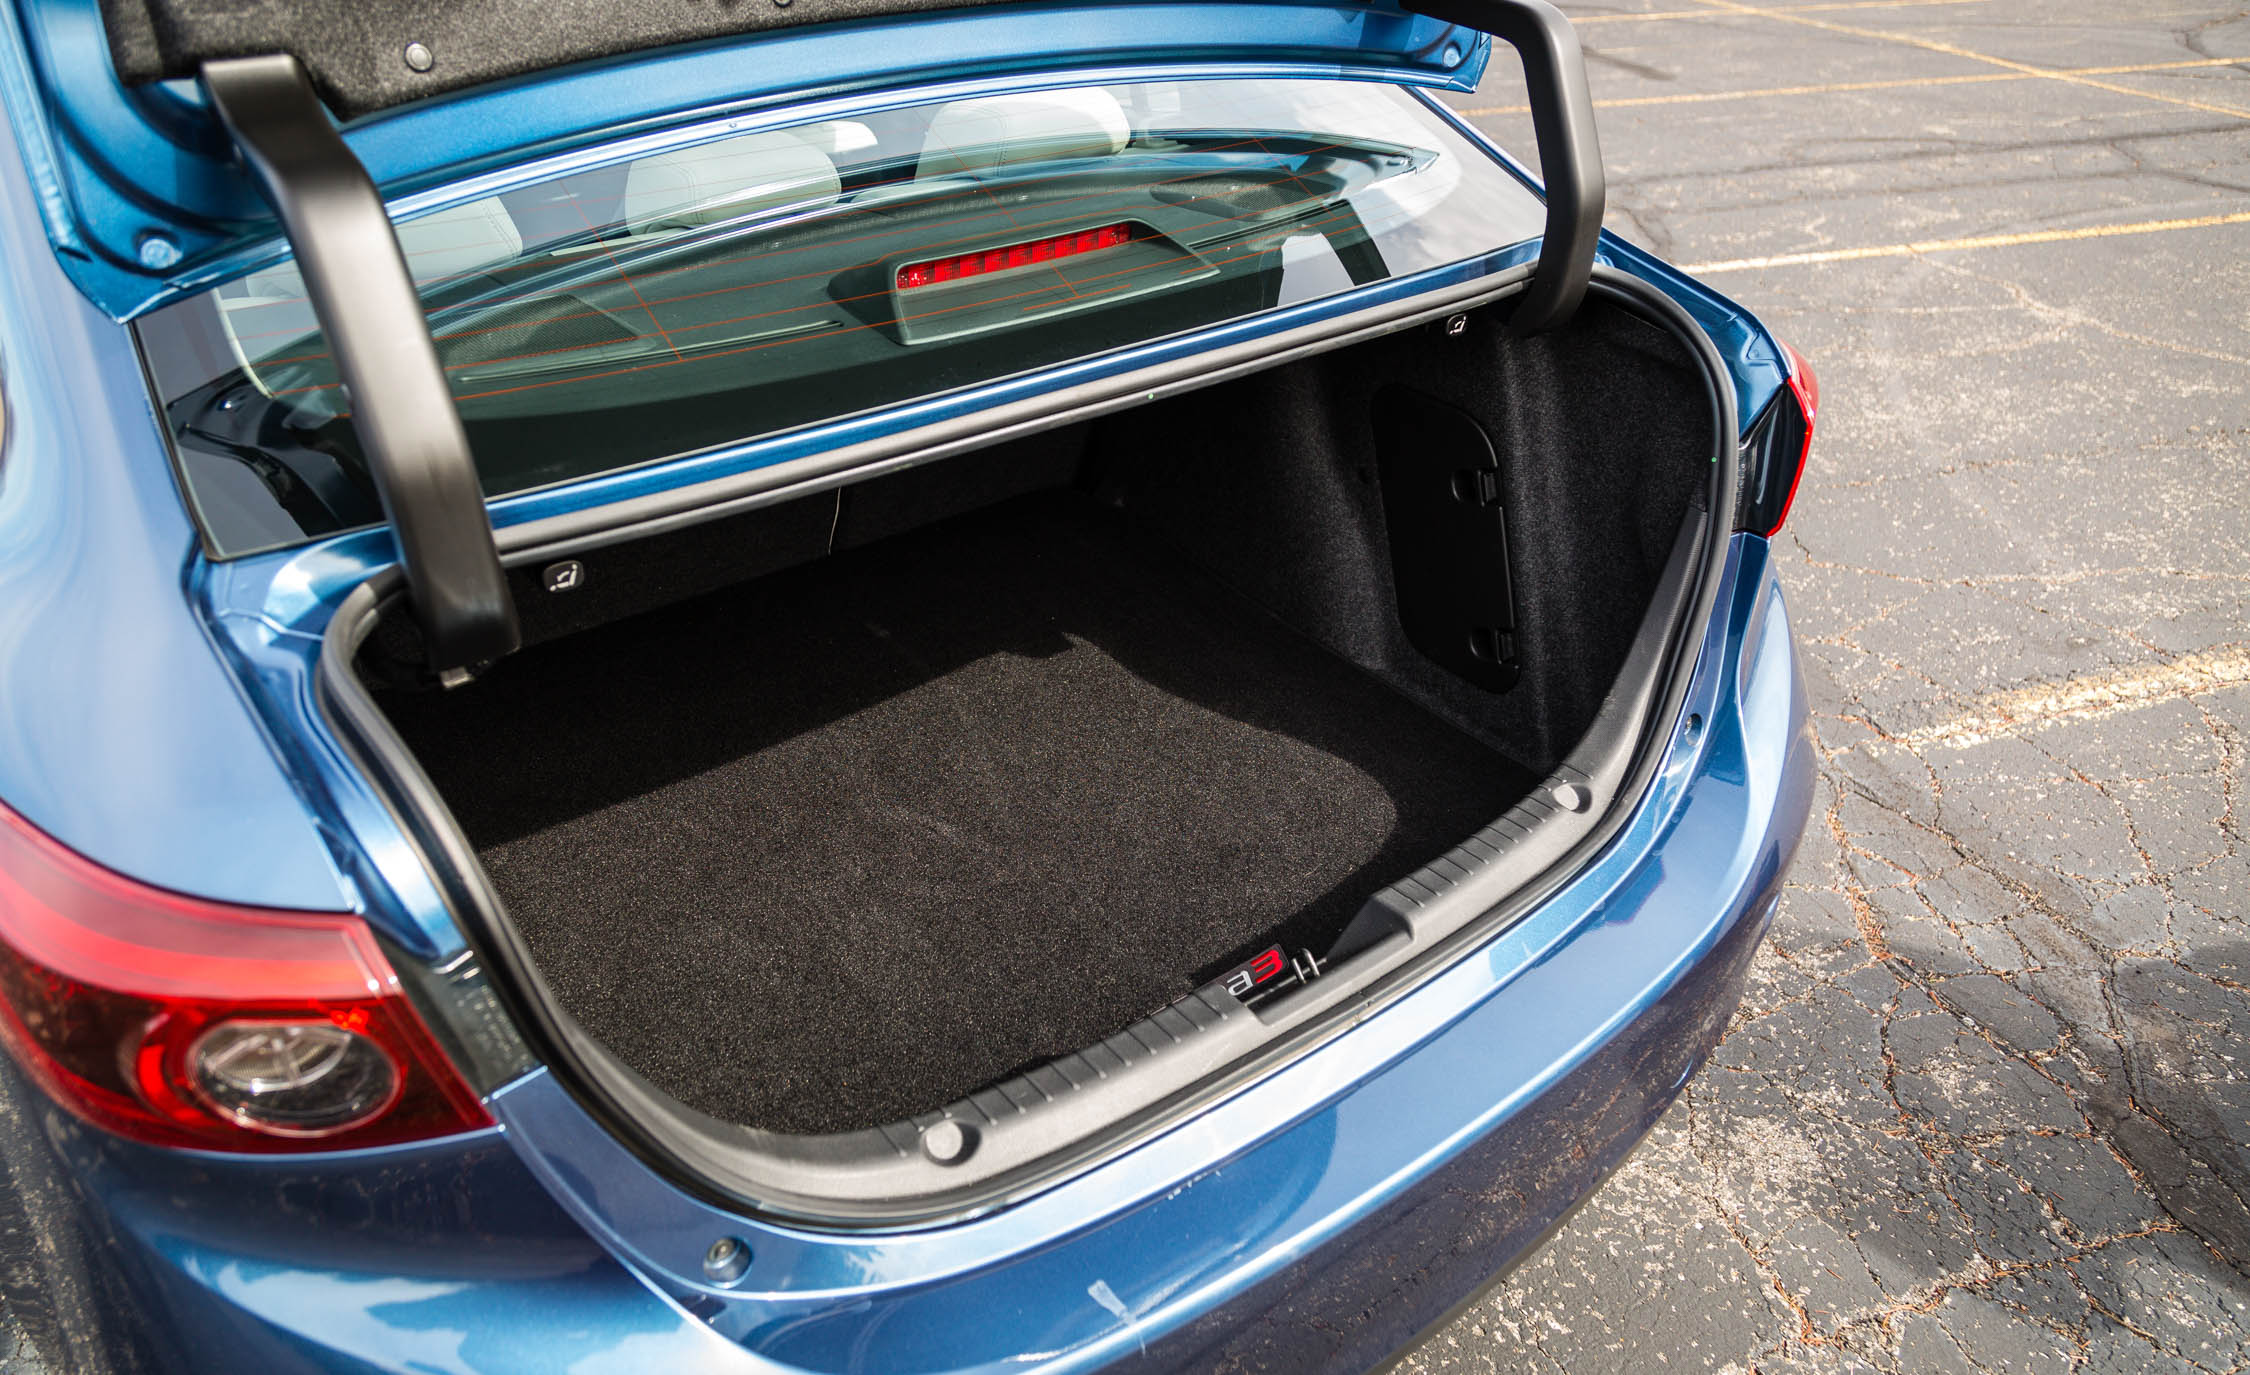 2017 Mazda 3 Grand Touring Sedan Interior View Cargo Trunk (Photo 28 of 51)